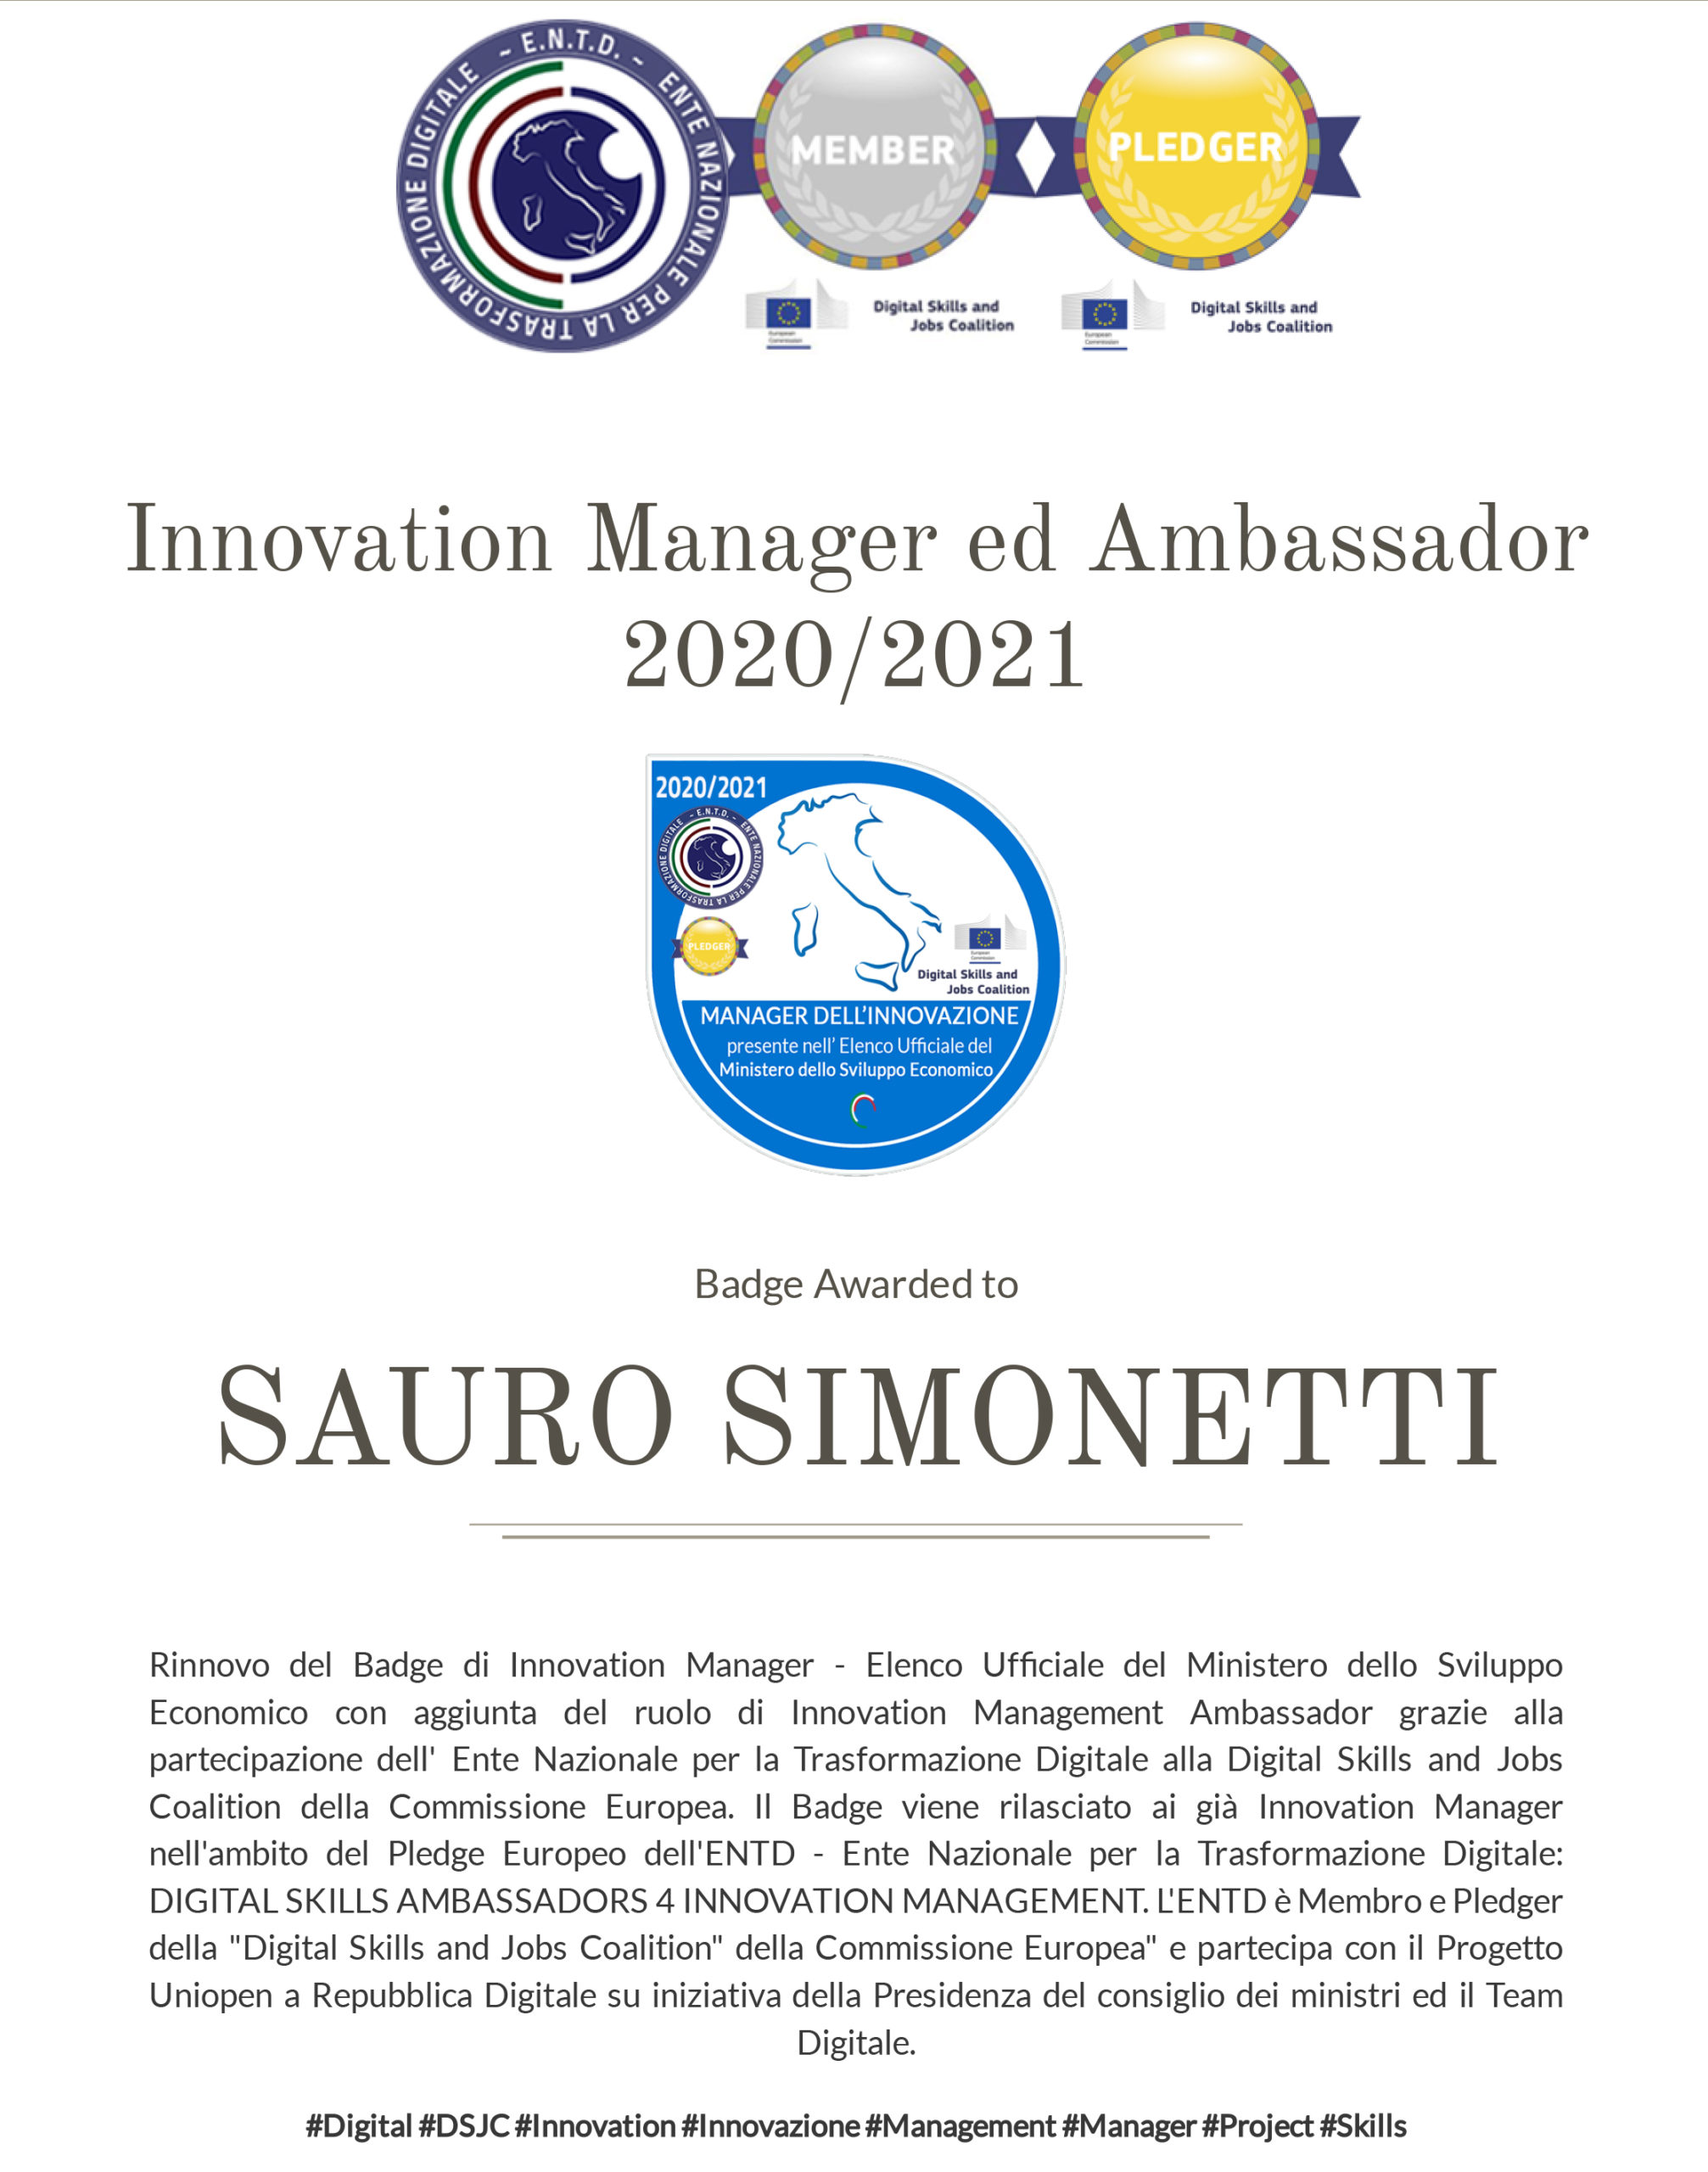 Sauro Simonetti: innovation manager e innovation management ambassador